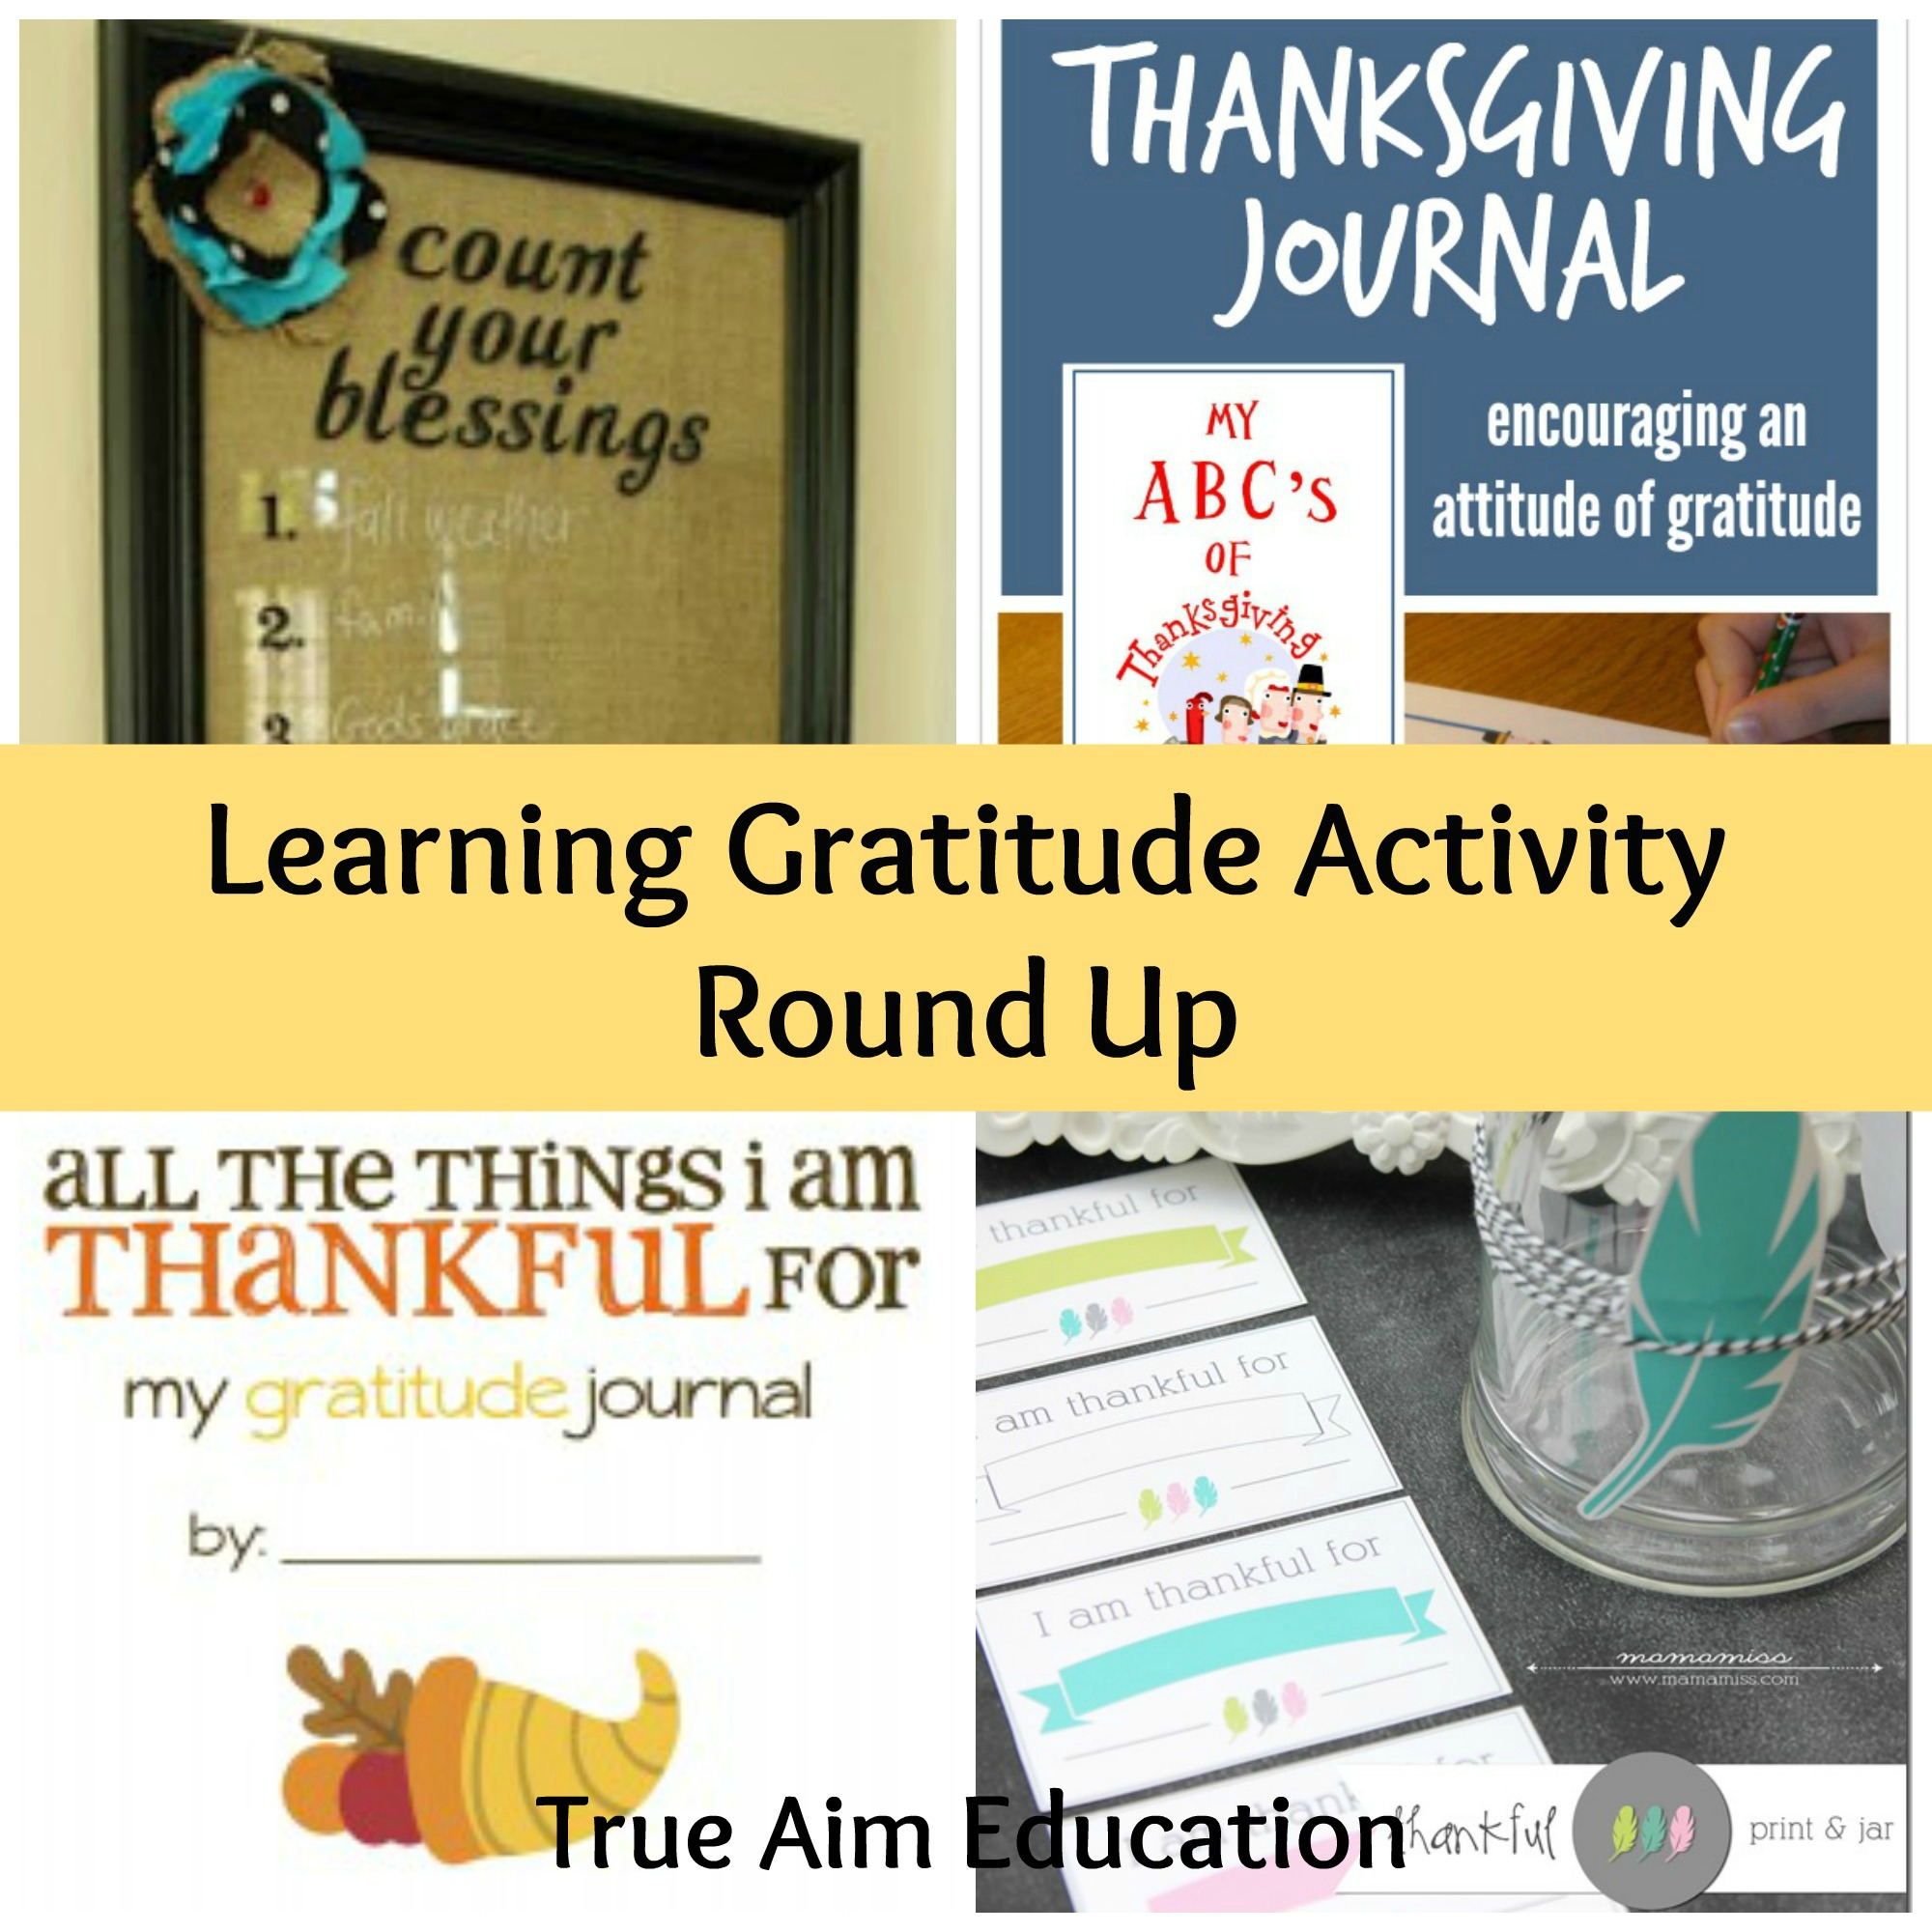 Seasons of grace the life giving practice of gratitude array learning gratitude activities for kids and free printables true aim rh trueaimeducation com fandeluxe Images